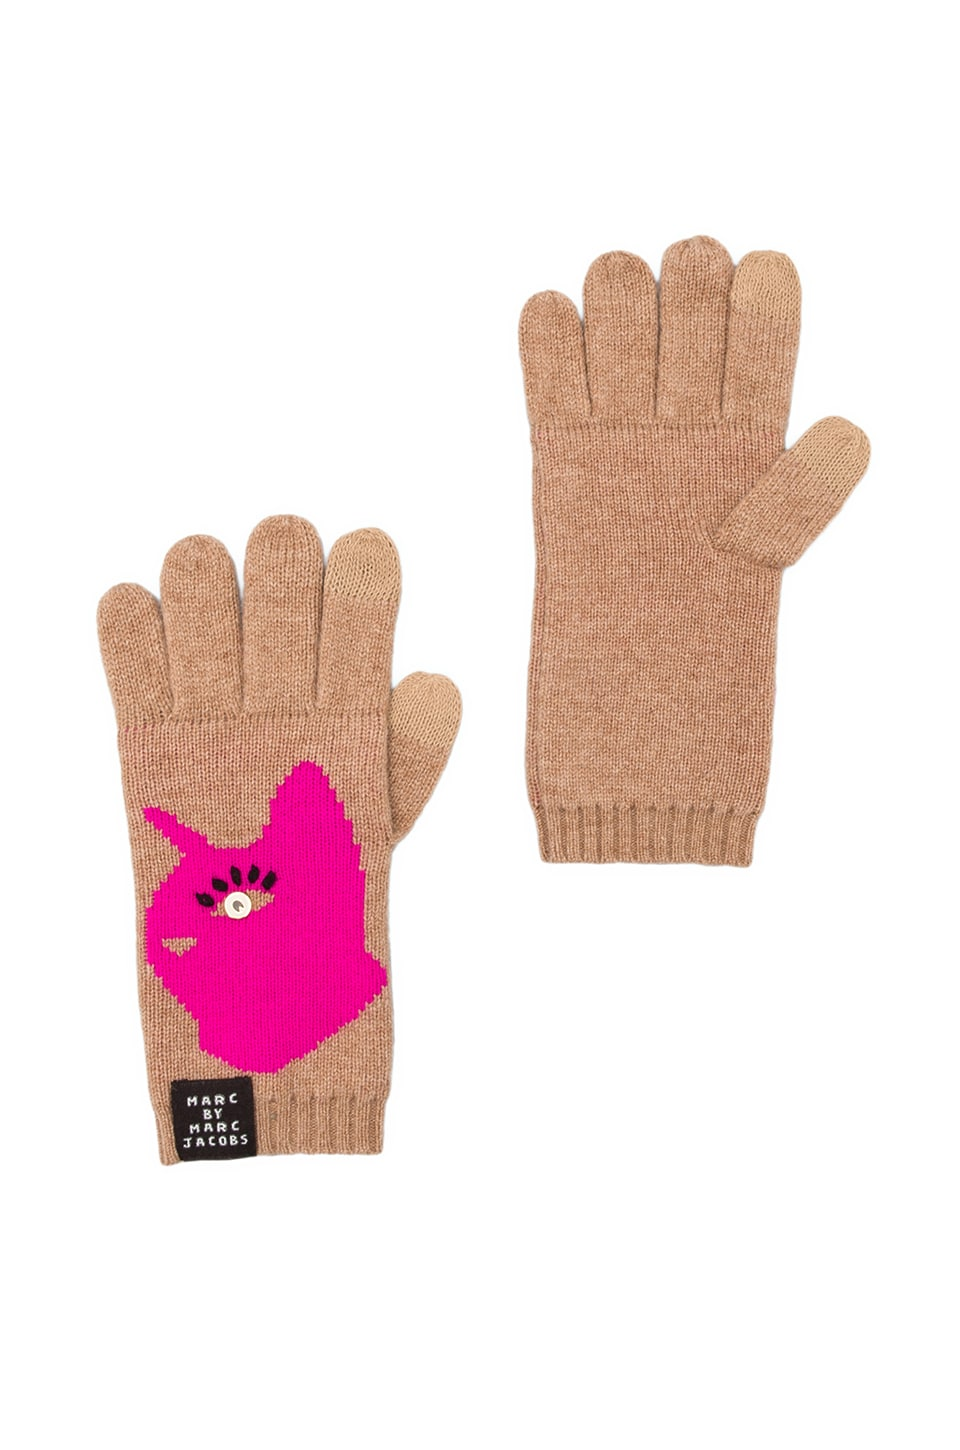 Marc by Marc Jacobs Rue Gloves in Malt Multi